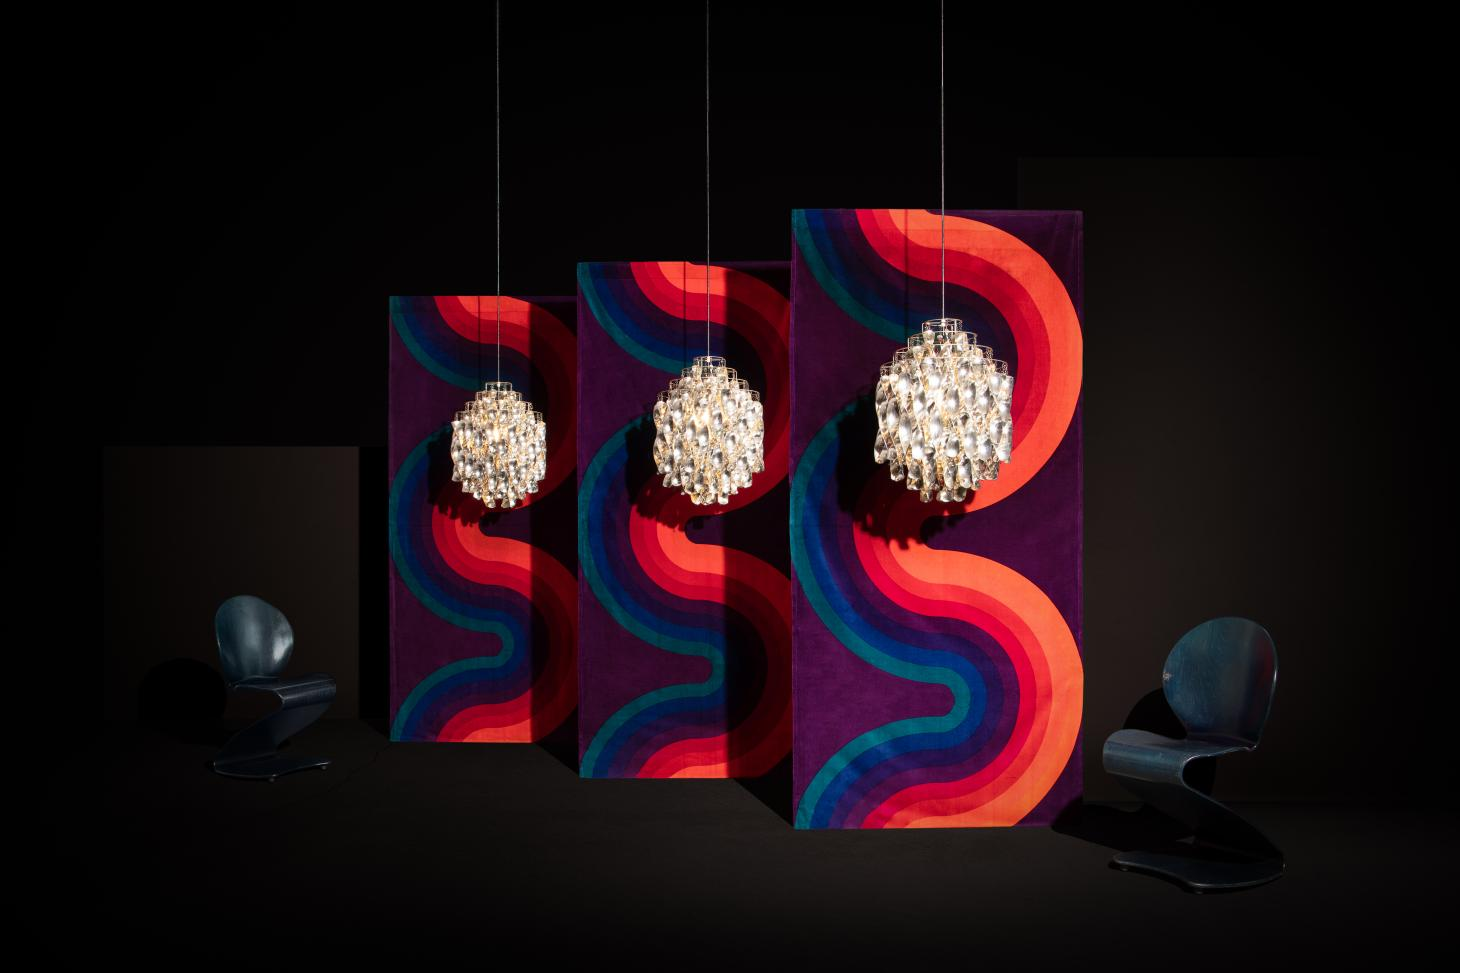 A dark room with a colourful background featuring a sinuous pattern, serving as the backdrop for Verner Panton chandeliers